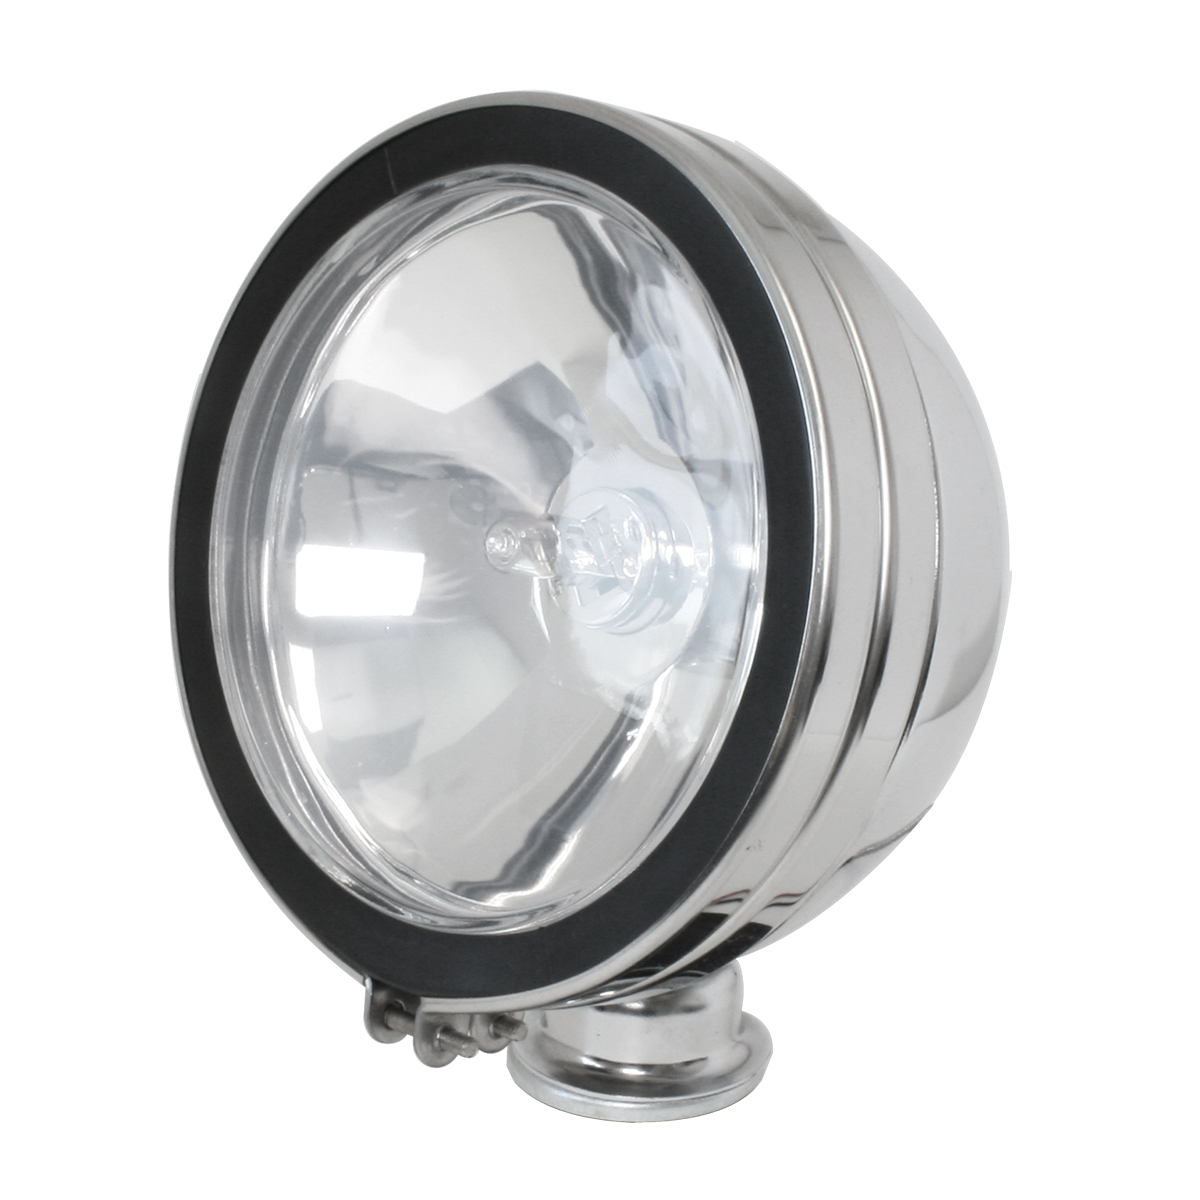 """#80620 6"""" Chrome Plated Off-Road Light 55 Watts - Clear"""